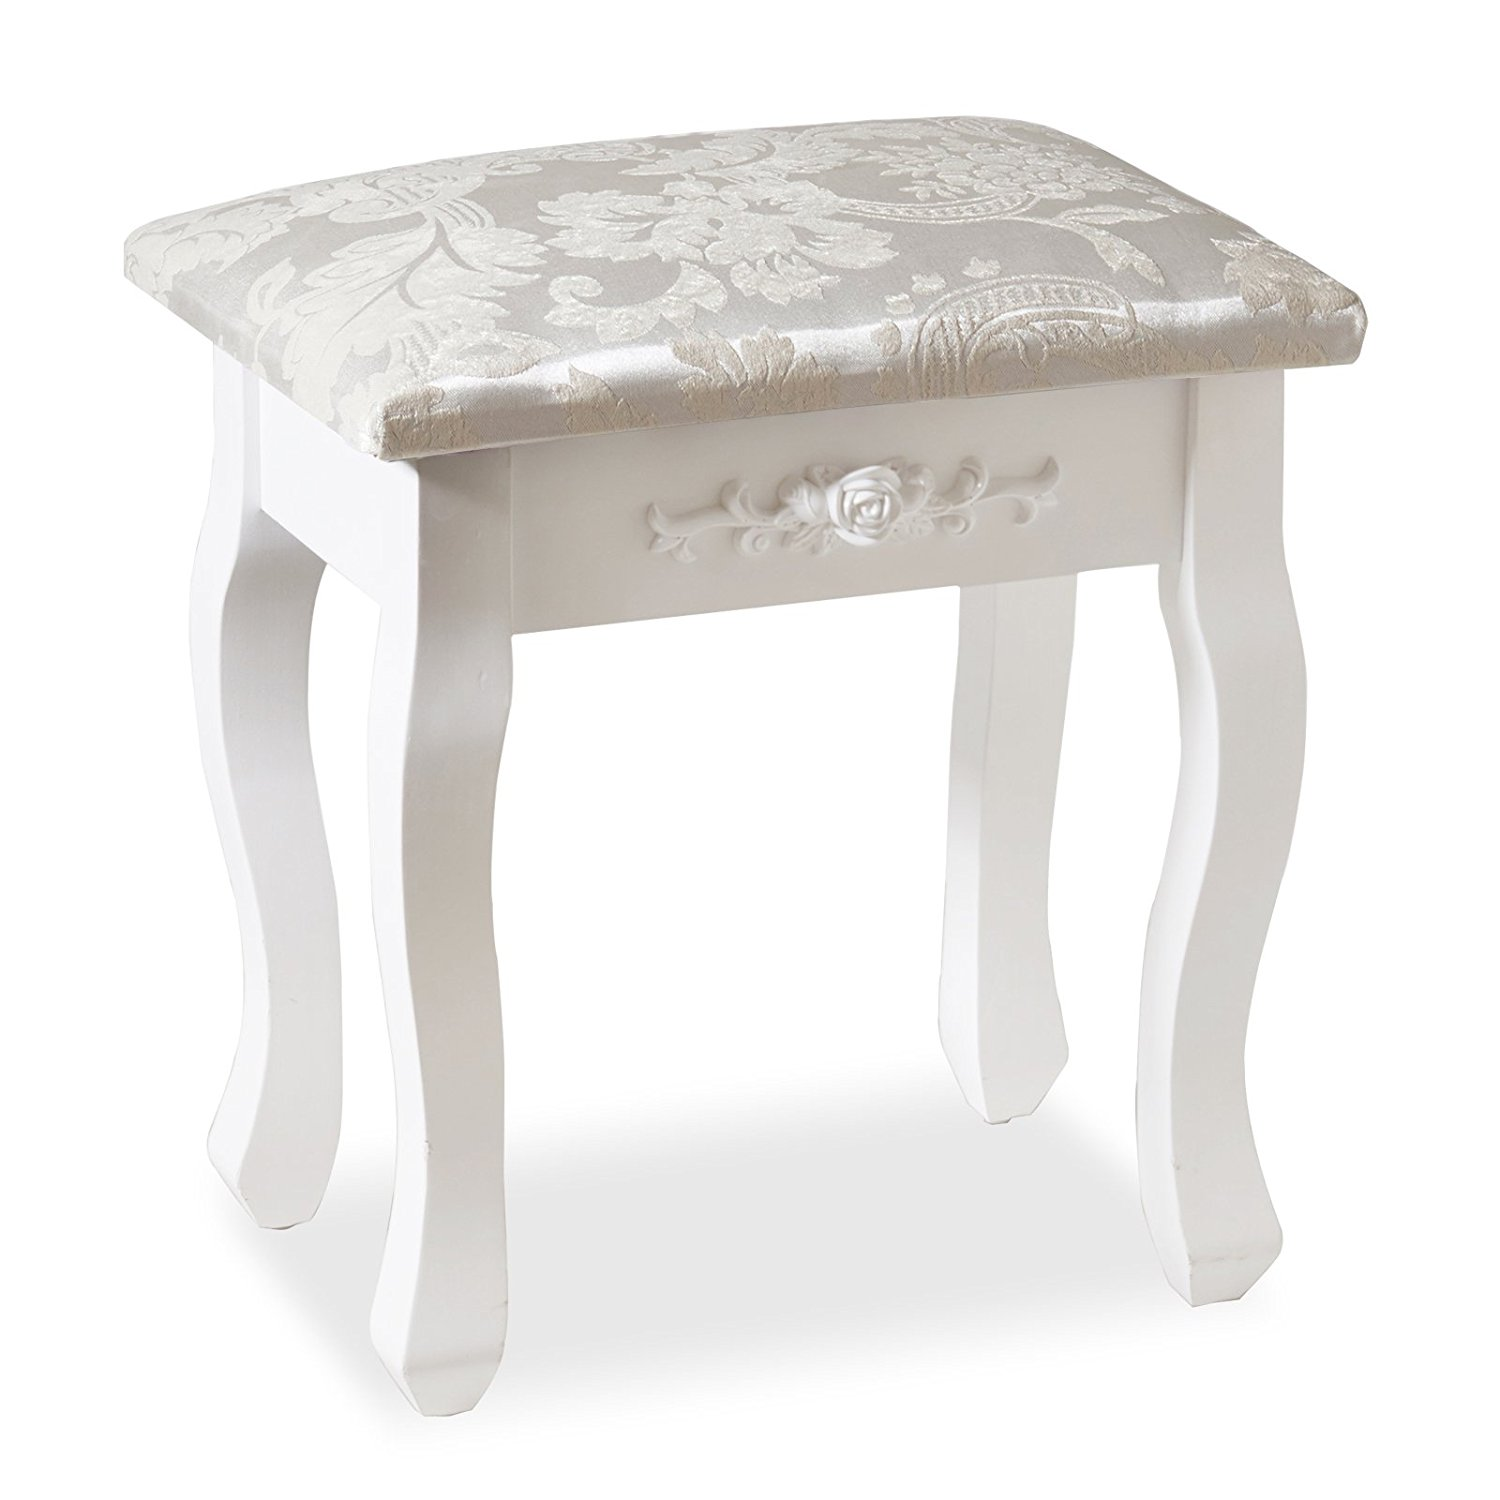 Elegant Vintage Dressing Table Stool Padded Piano Chair Makeup Padded Seat NEW